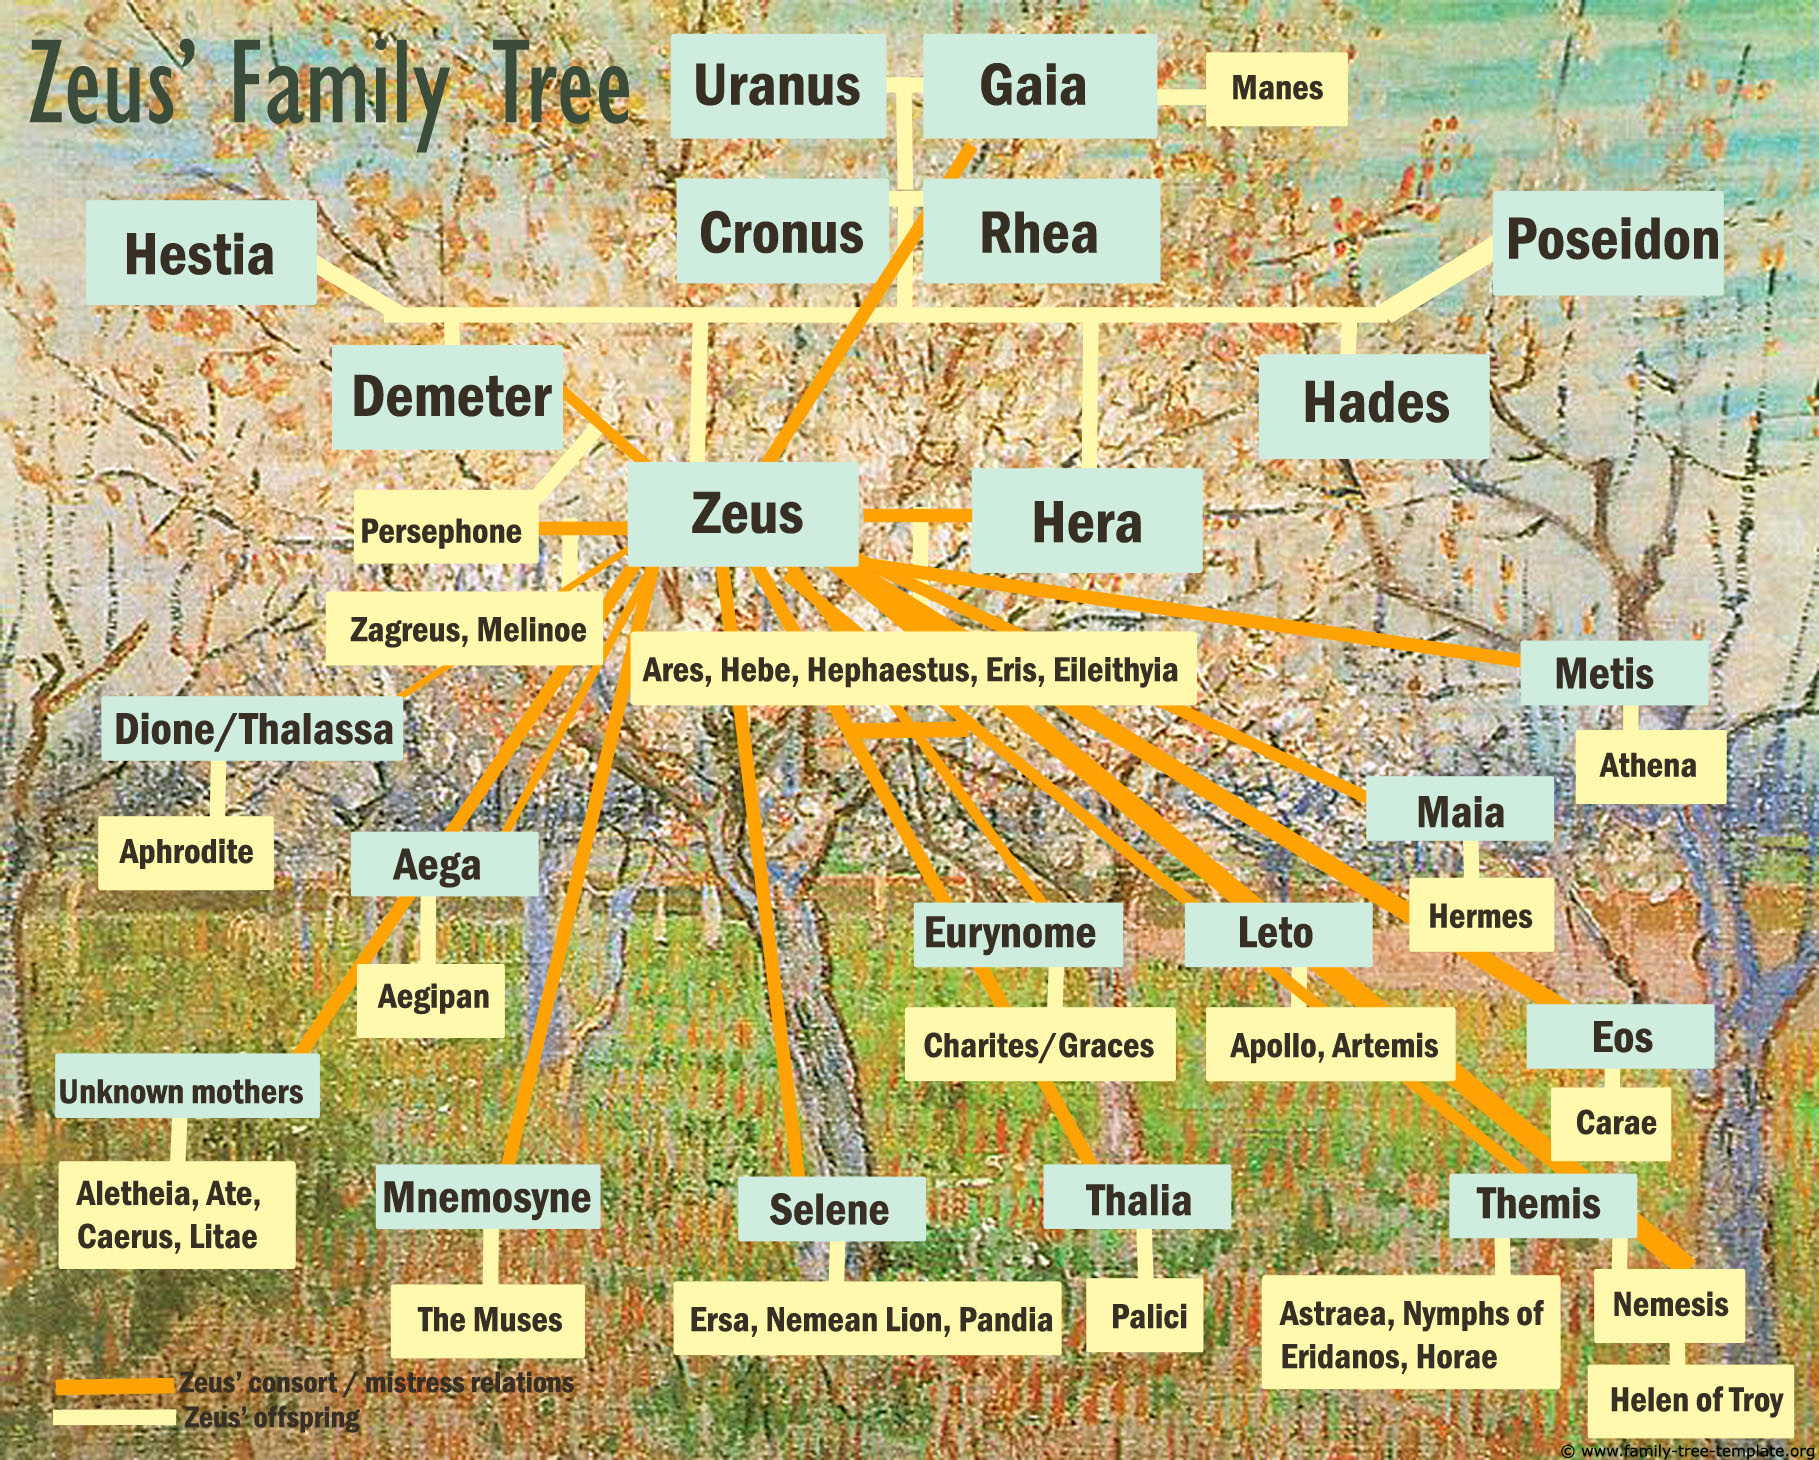 Zeus Family Tree Charts of Greek Gods | Family Tree Template